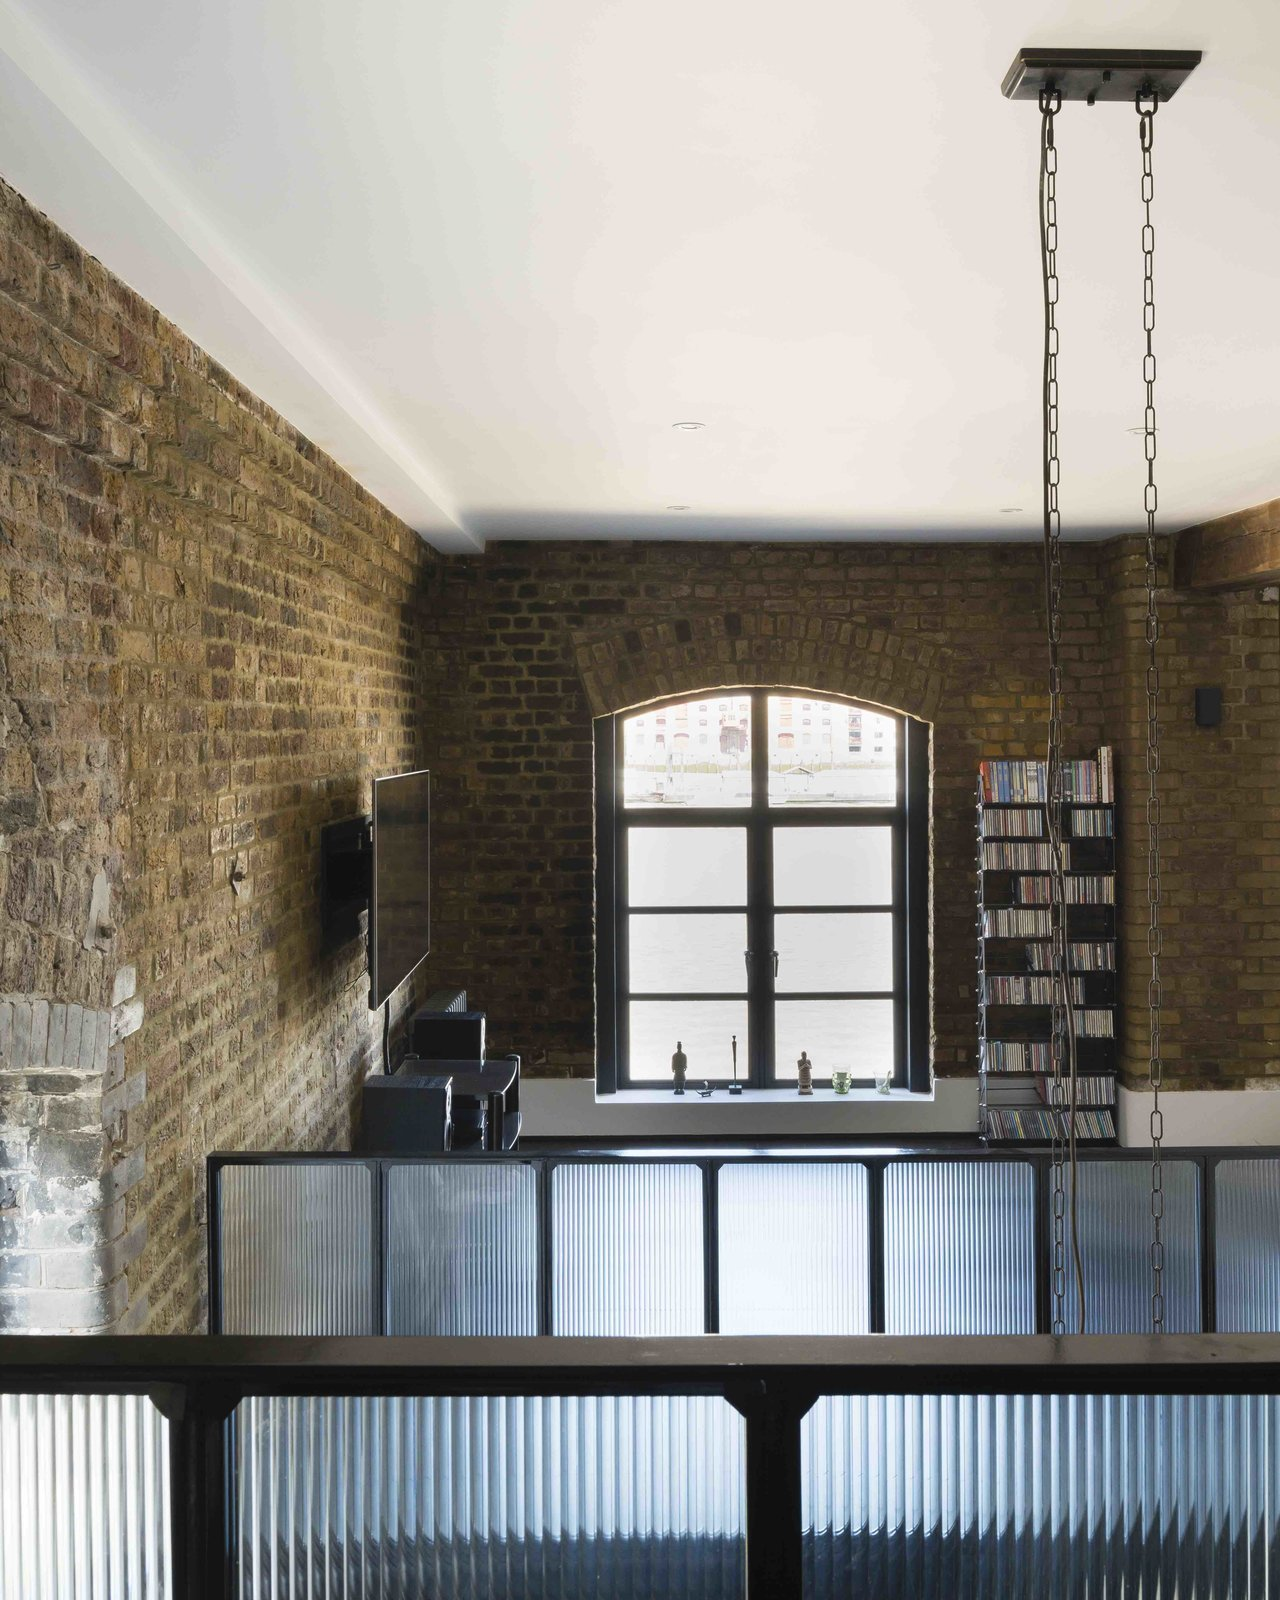 Living Room and Bookcase  Photo 4 of 12 in An Old Grain Warehouse on the River Thames Is Transformed Into an Industrial-Modern Home